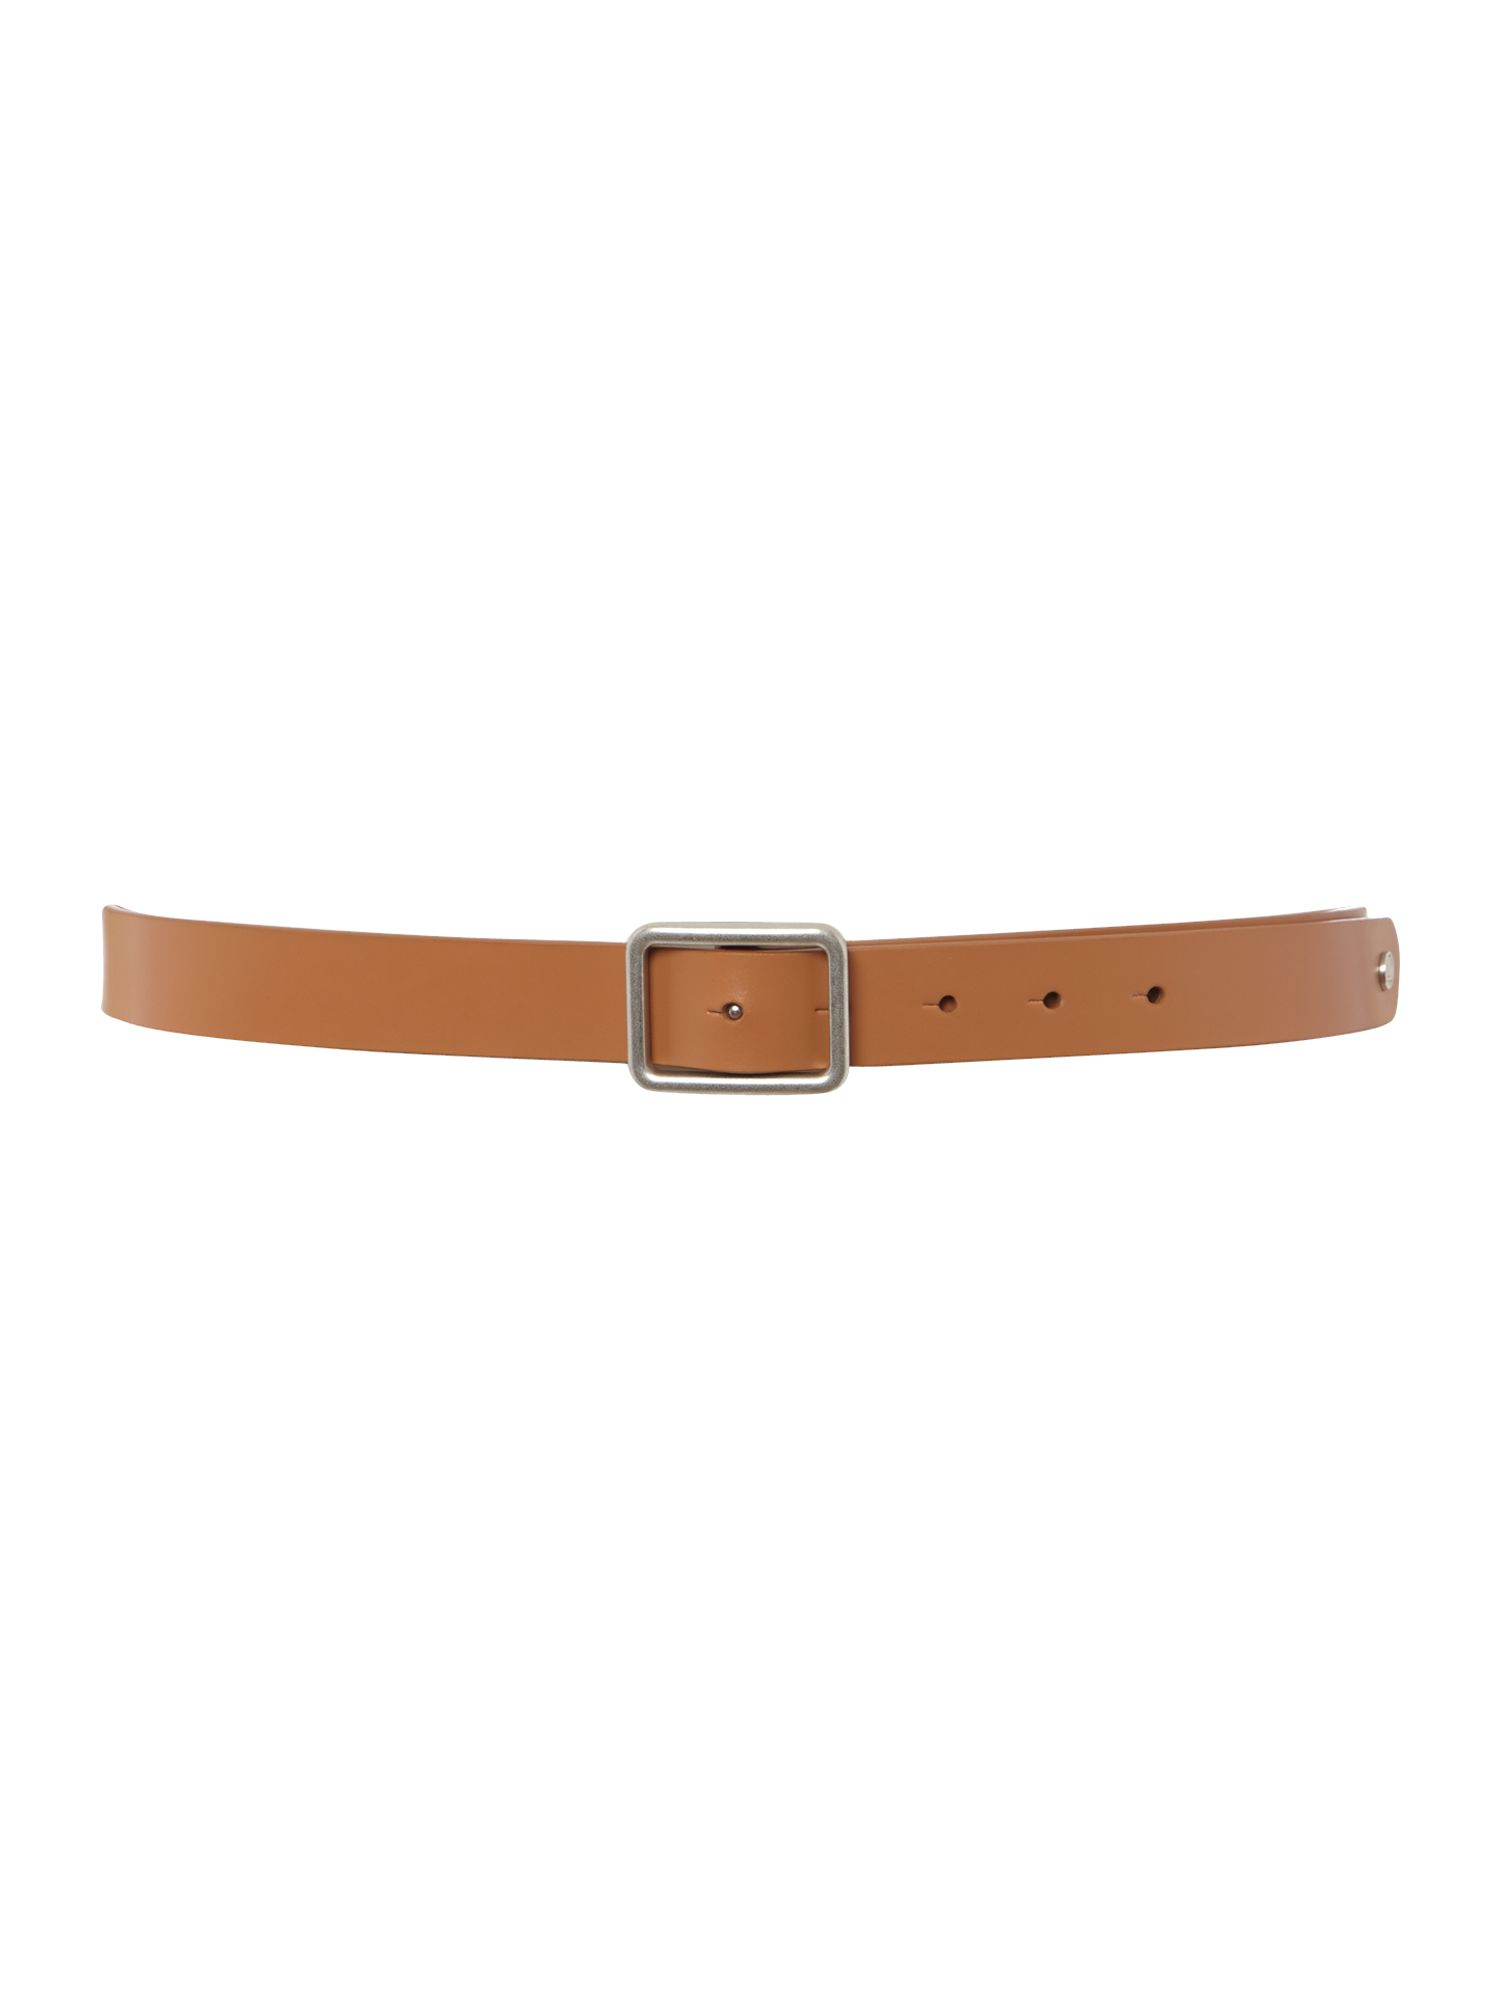 Buckley saddle leather belt